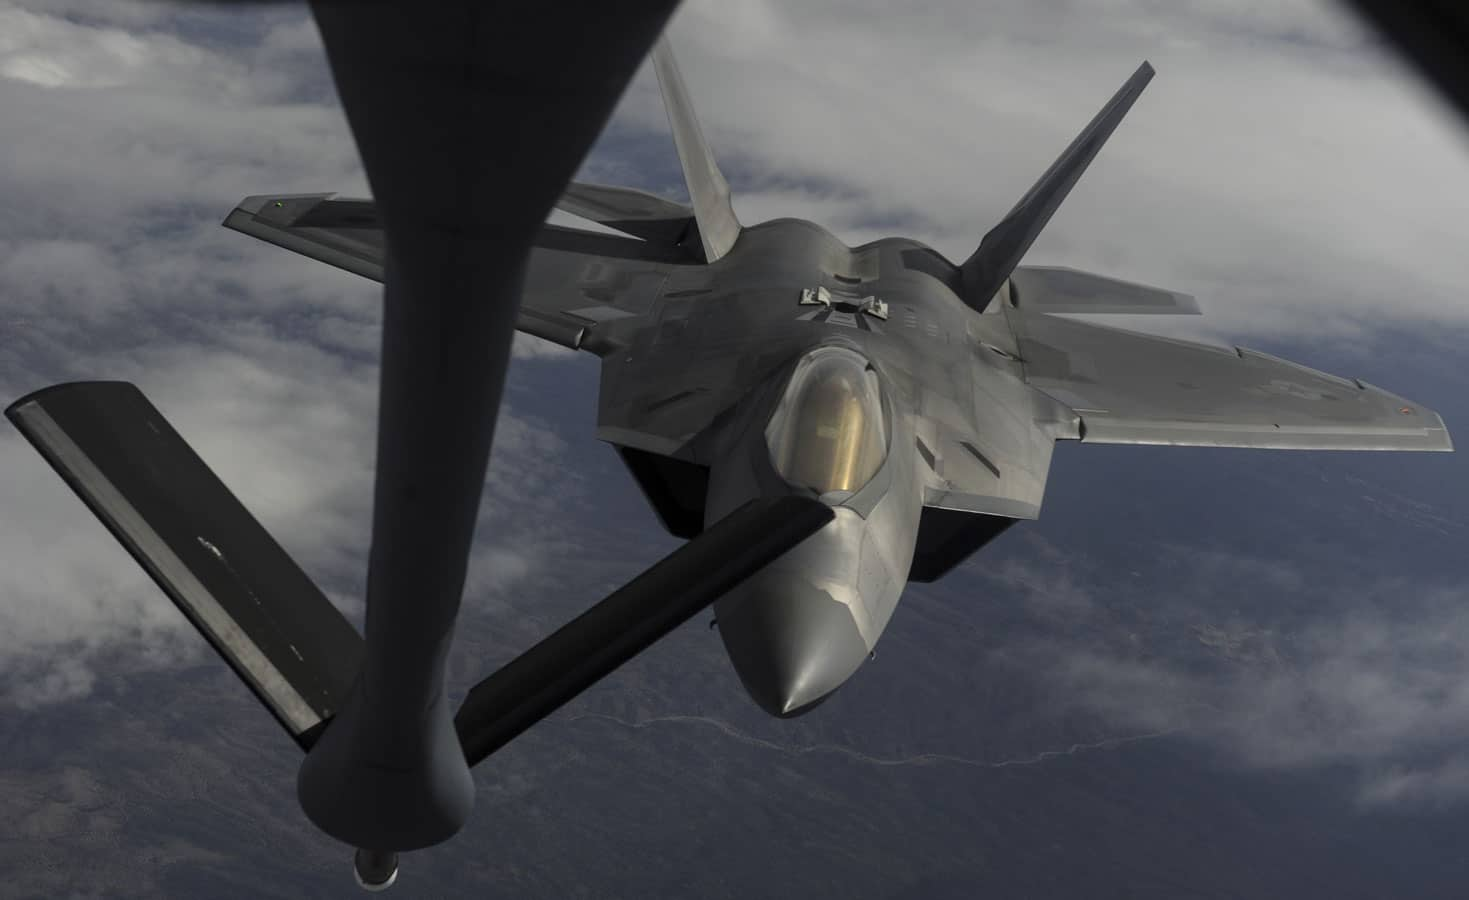 An F-22 Raptor fighter jet, assigned to the 433rd Weapons Squadron, at Nellis Air Force Base, flies to meet a KC-135 Stratotanker cargo aircraft assigned to the 509th Weapons Squadron, Fairchild Air Force Base, Washington, boom for aerial refueling over the Nevada Test and Training Range, Nevada.